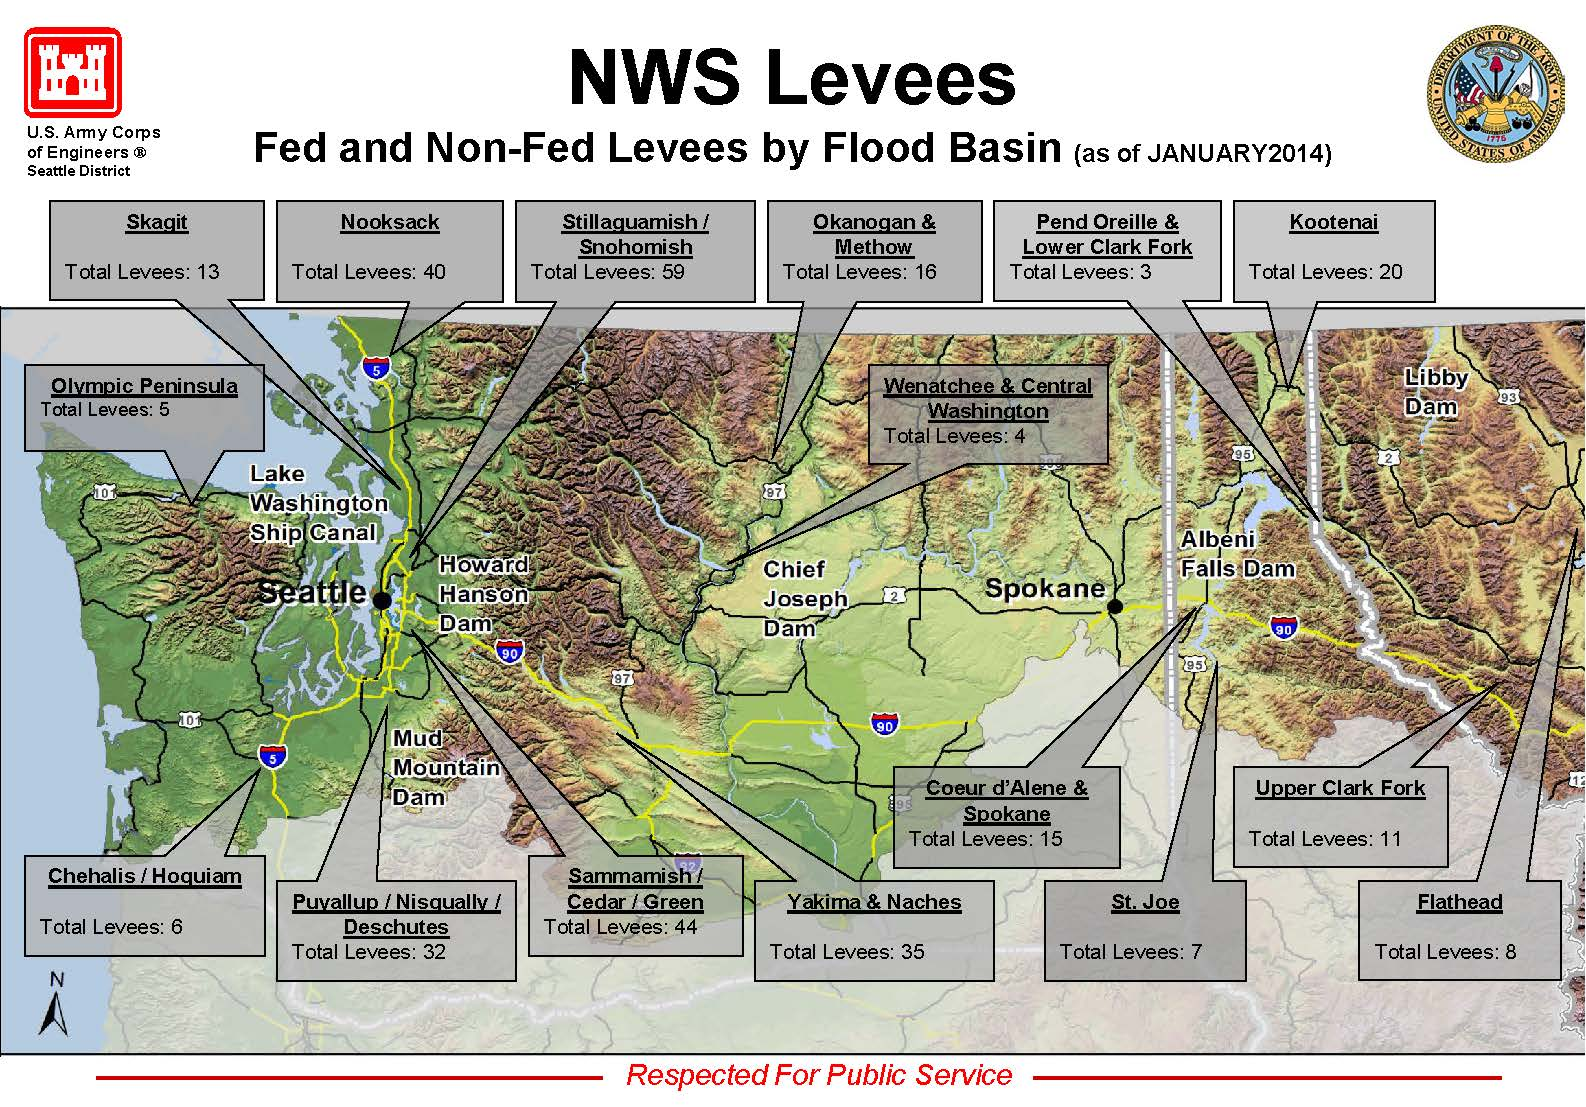 Federal and non-federal levees by bason